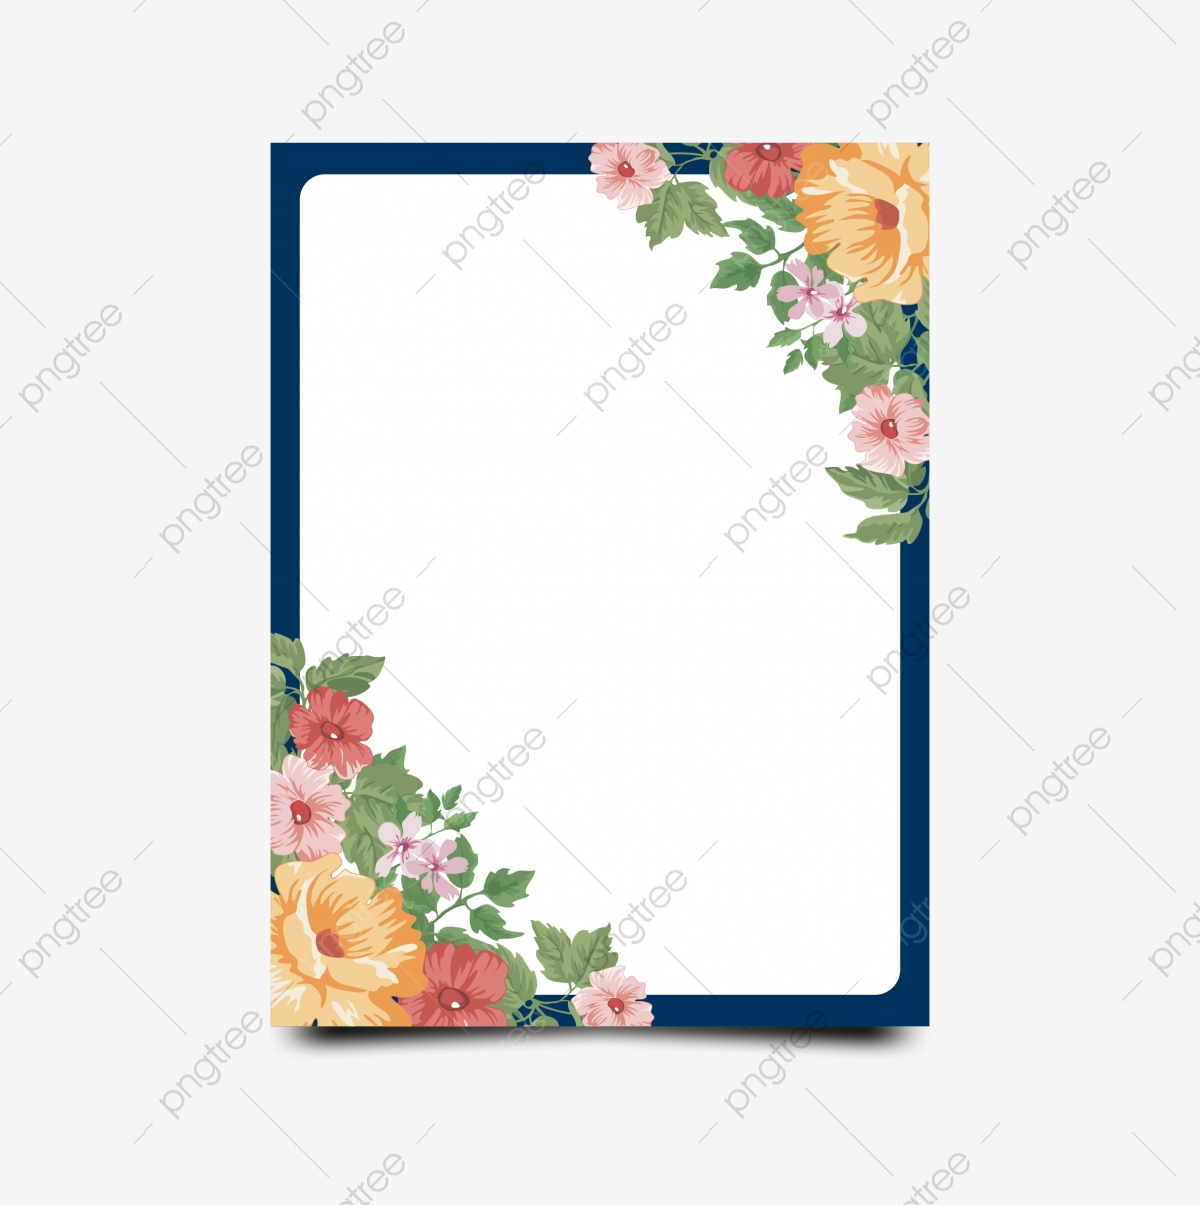 Flower Invitation Template Png